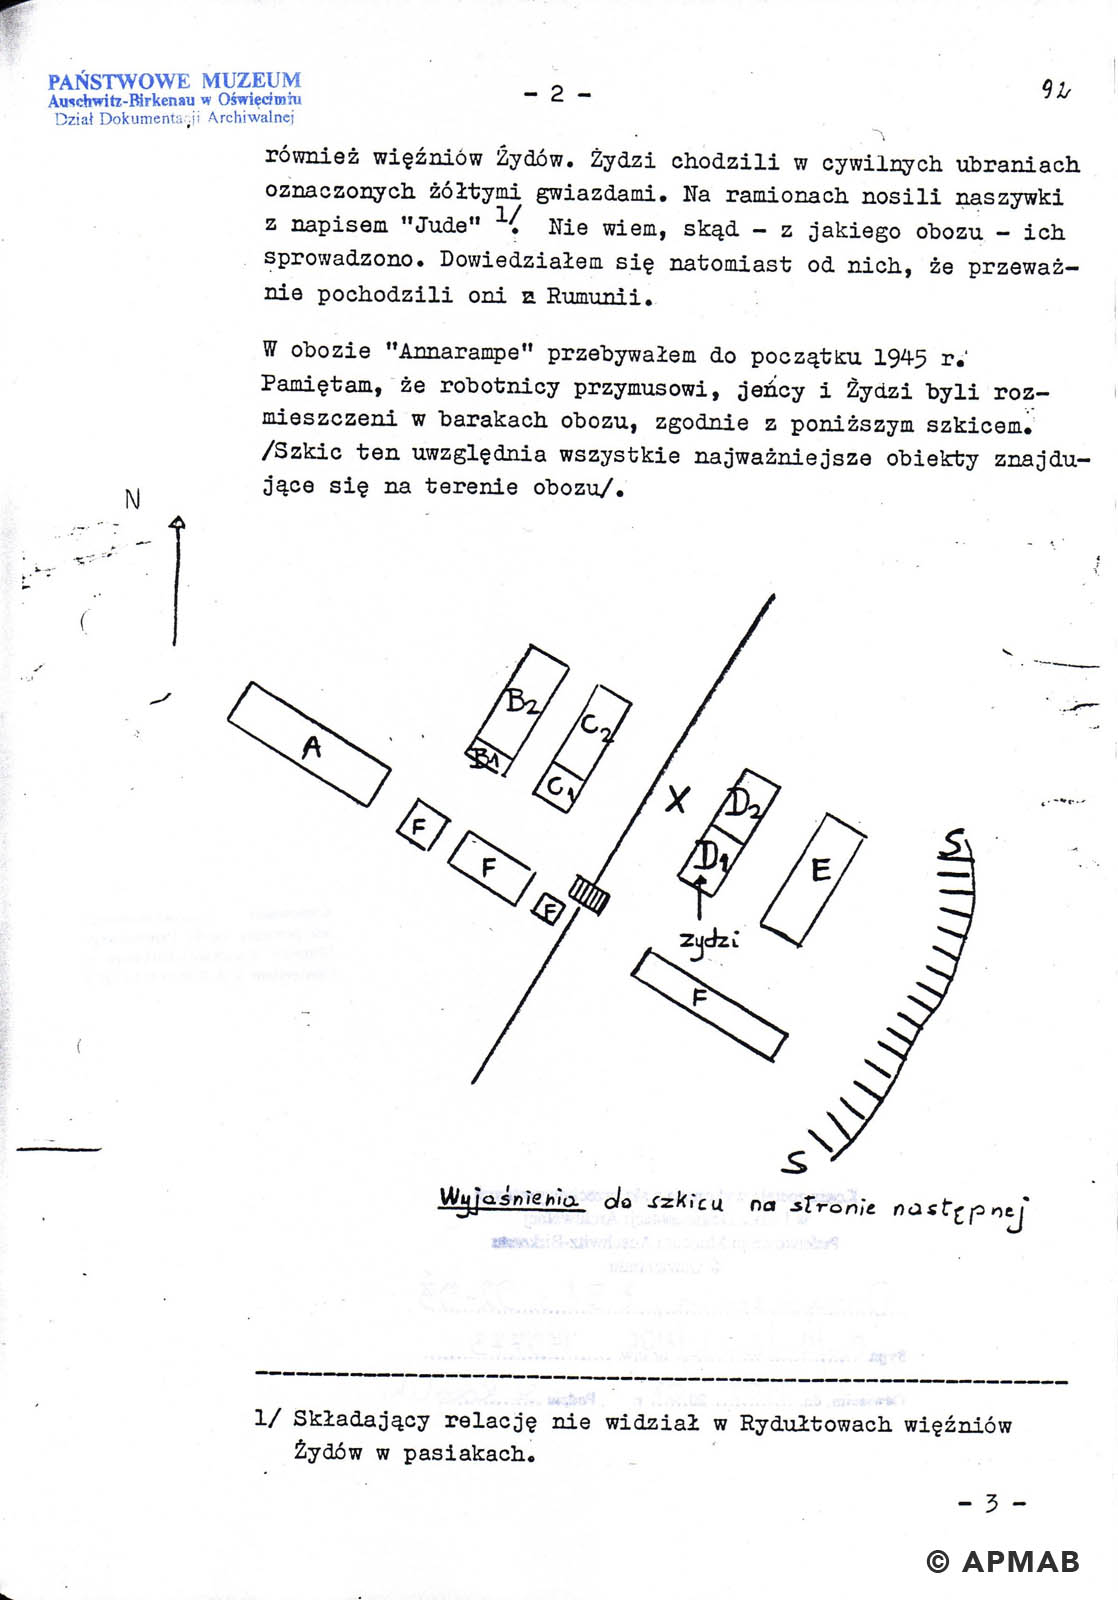 Drawing of Annarampe camp by former prisoner A. APMAB